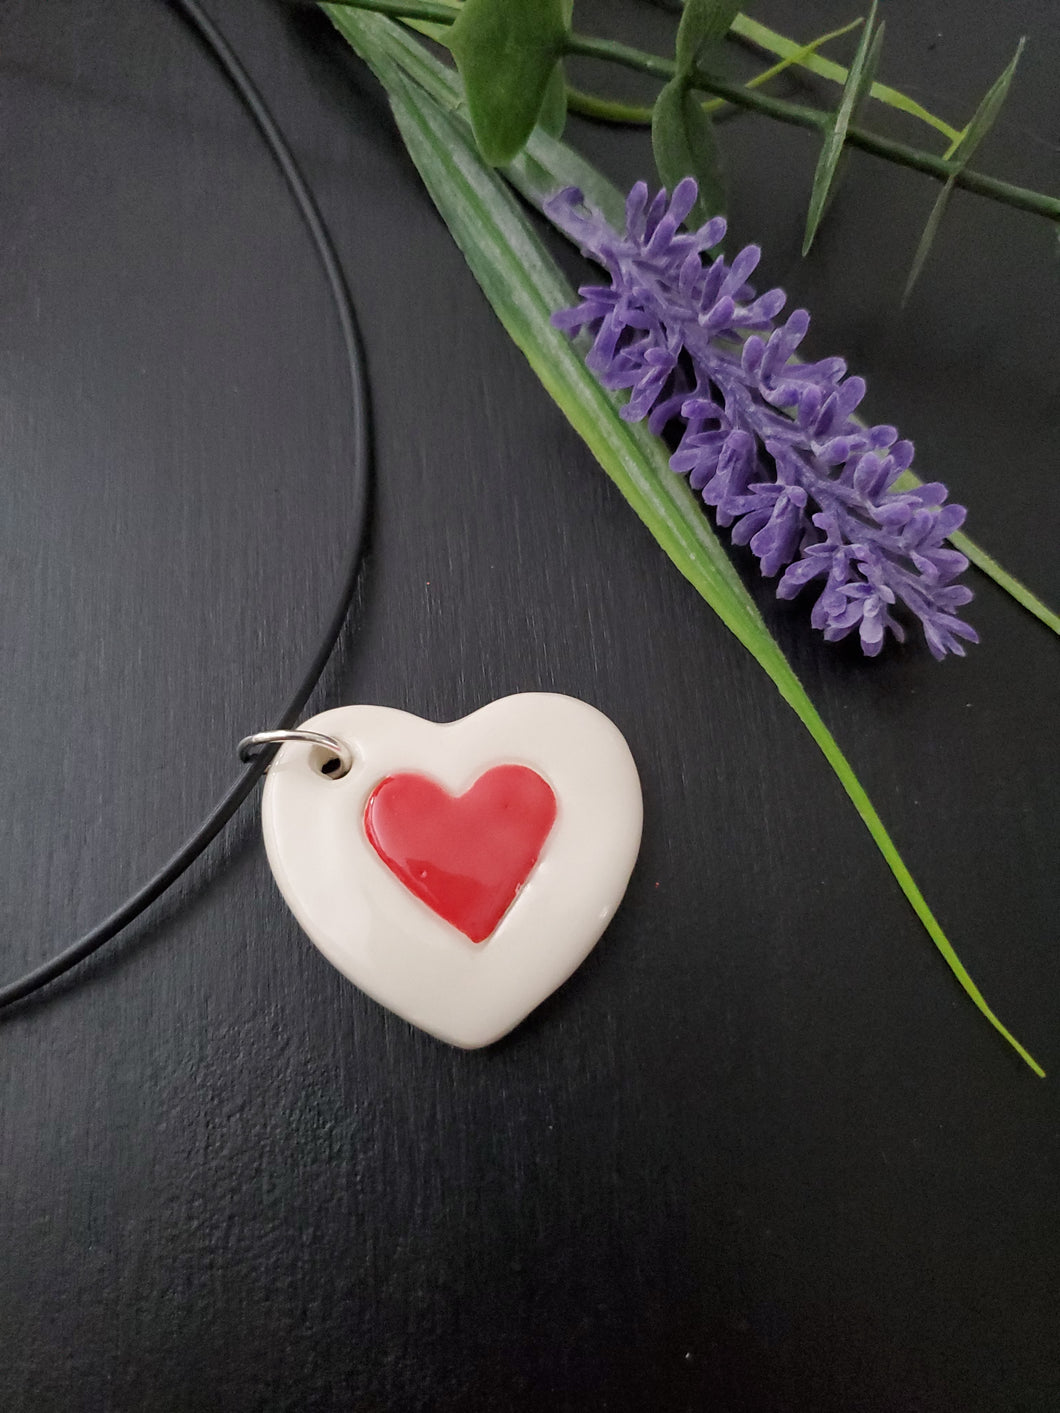 Red Heart on Heart Pendant/Necklace